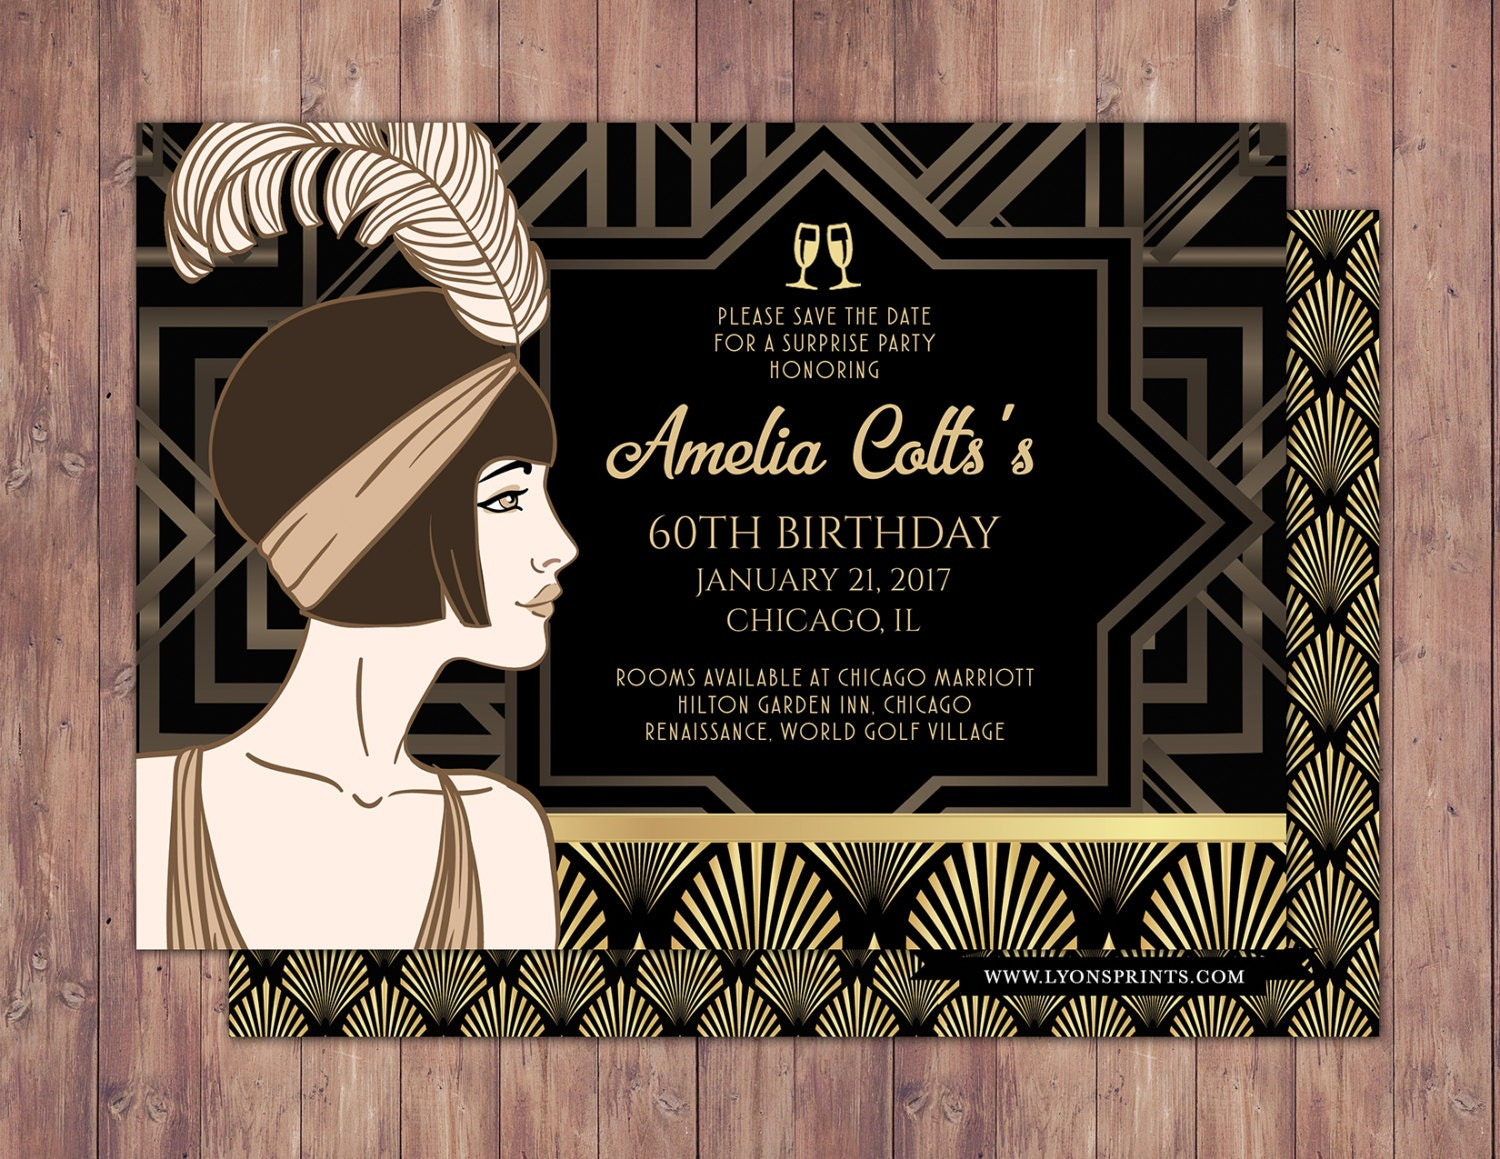 Great Gatsby, save the date invitation, RSVP card, Roaring 20\'s ...